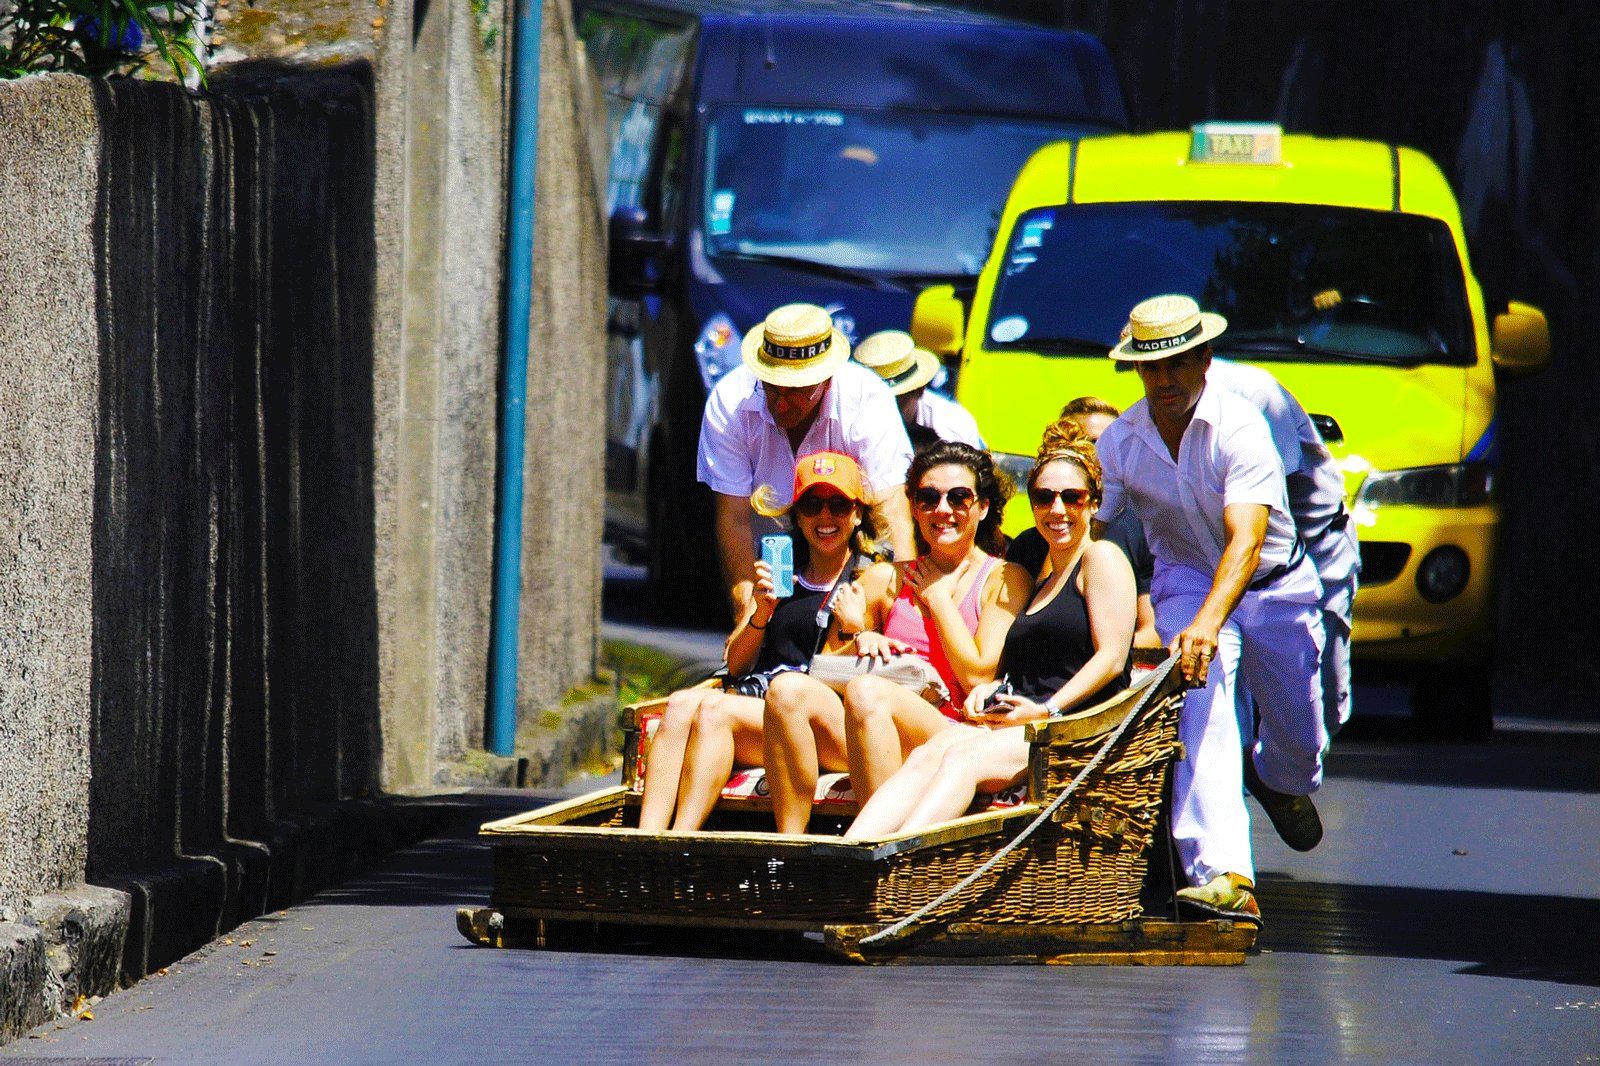 How to ride in toboggan wooden sledge down asphalt road on Madeira